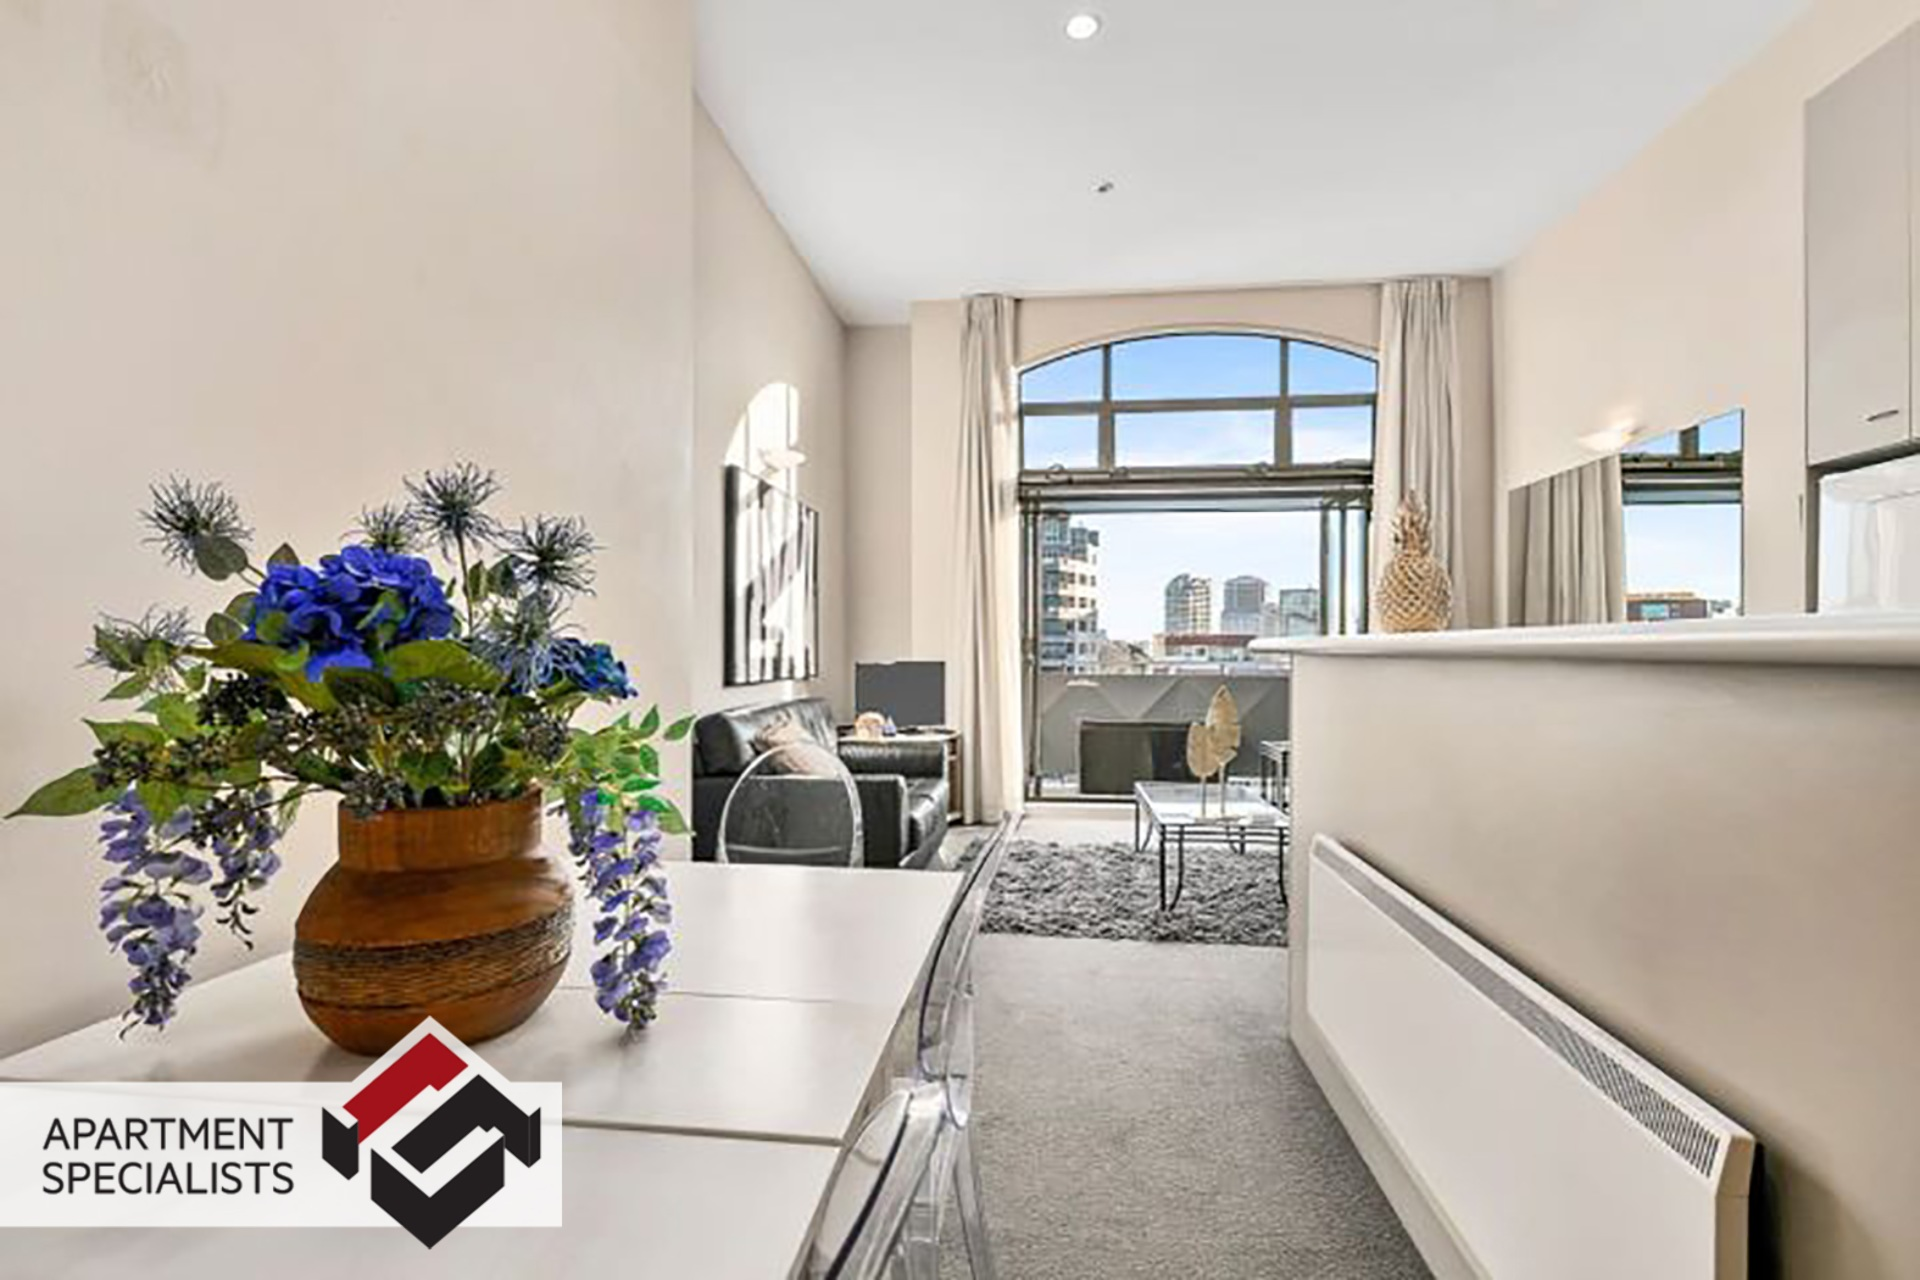 2 | 50 Eden Crescent, City Centre | Apartment Specialists